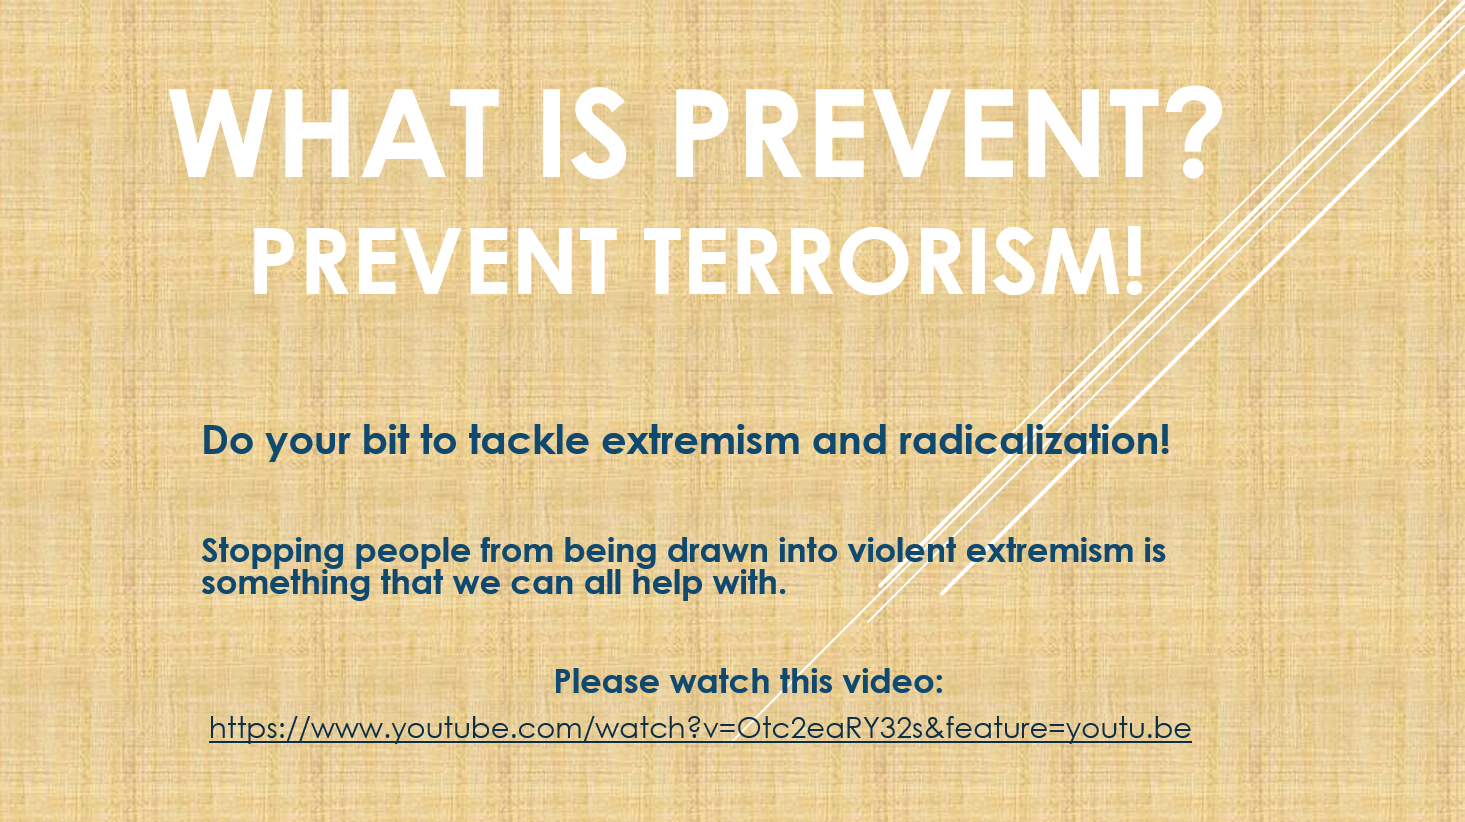 WHAT IS PREVENT?